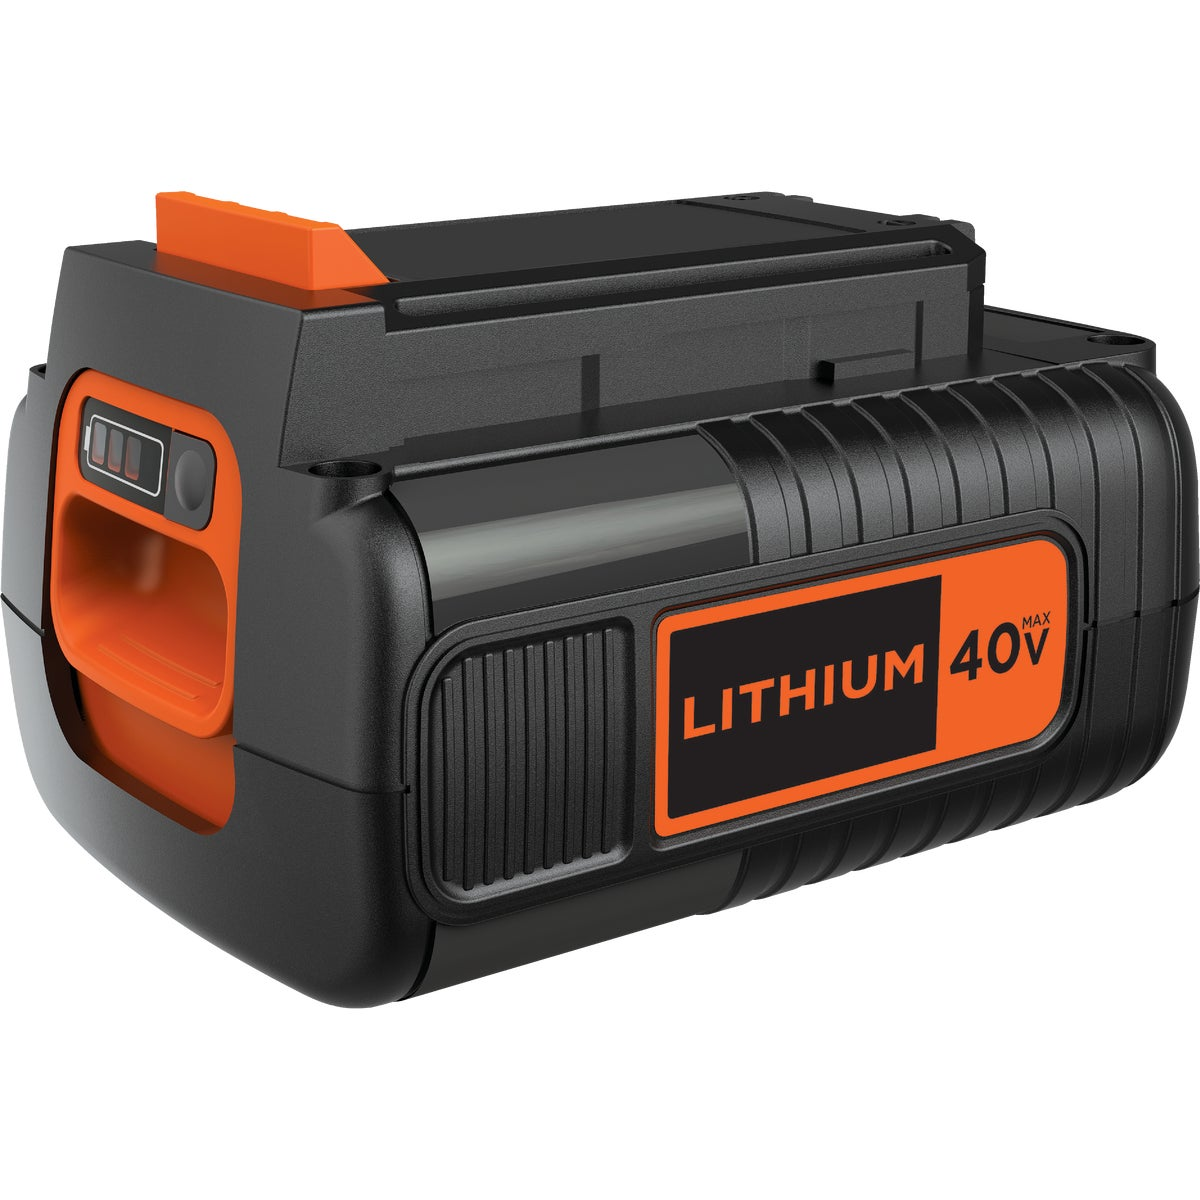 40V LITHIUM REPL BATTERY - LBXR2036 by Black & Decker